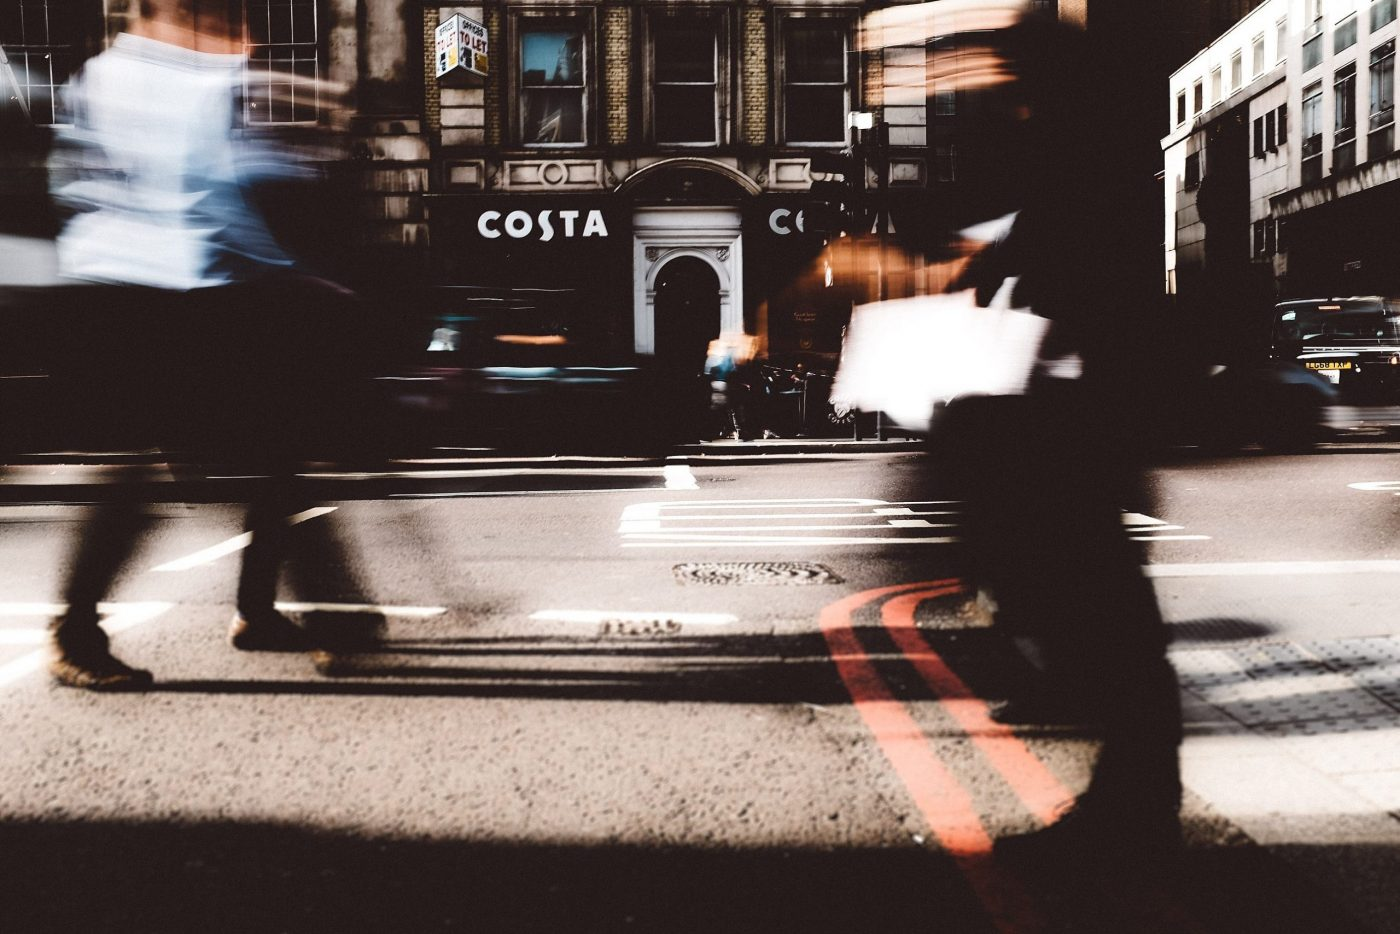 Costa in London long exposure photography